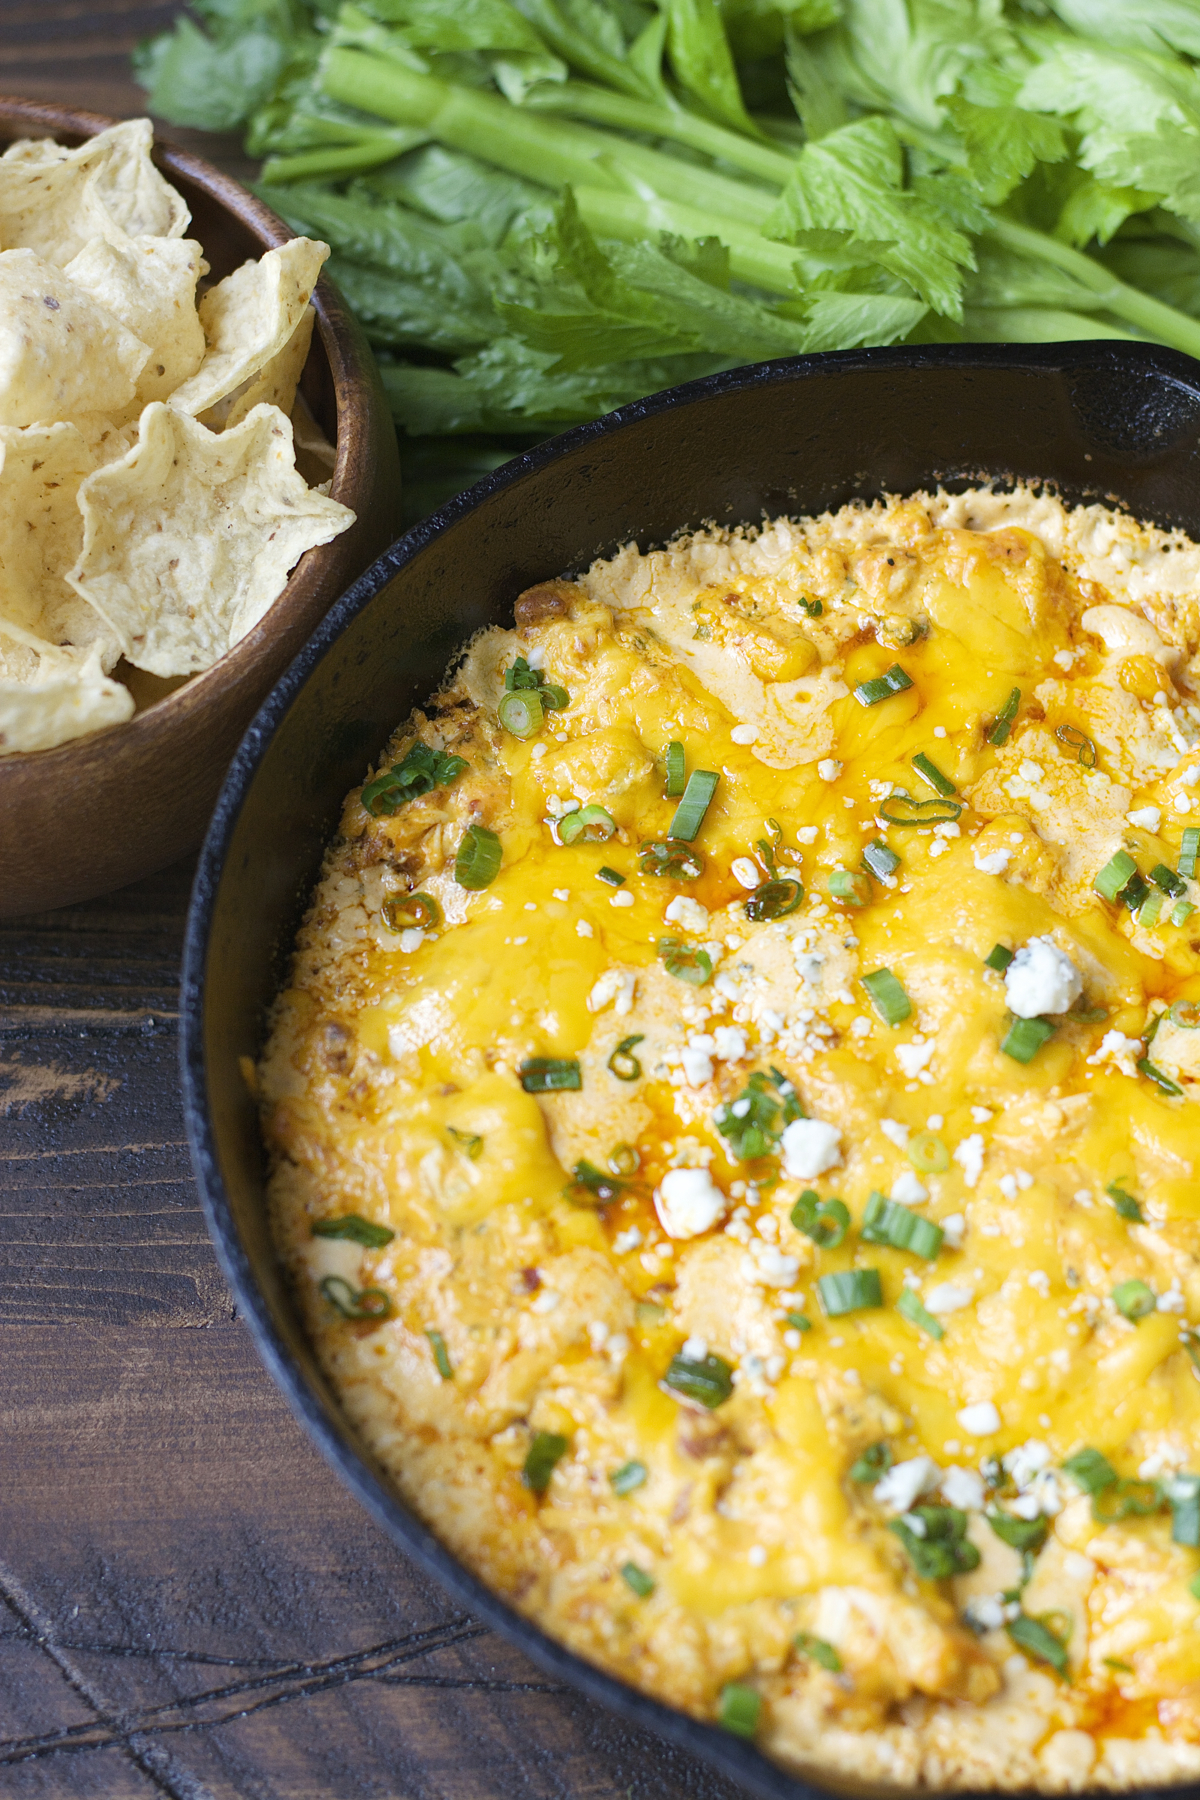 This Blue Cheese Bacon Buffalo Chicken Dip is packed with tangy buffalo sauce, crunchy celery, salty bacon, loads of cheese and shredded chicken! This is the ultimate game day appetizer!